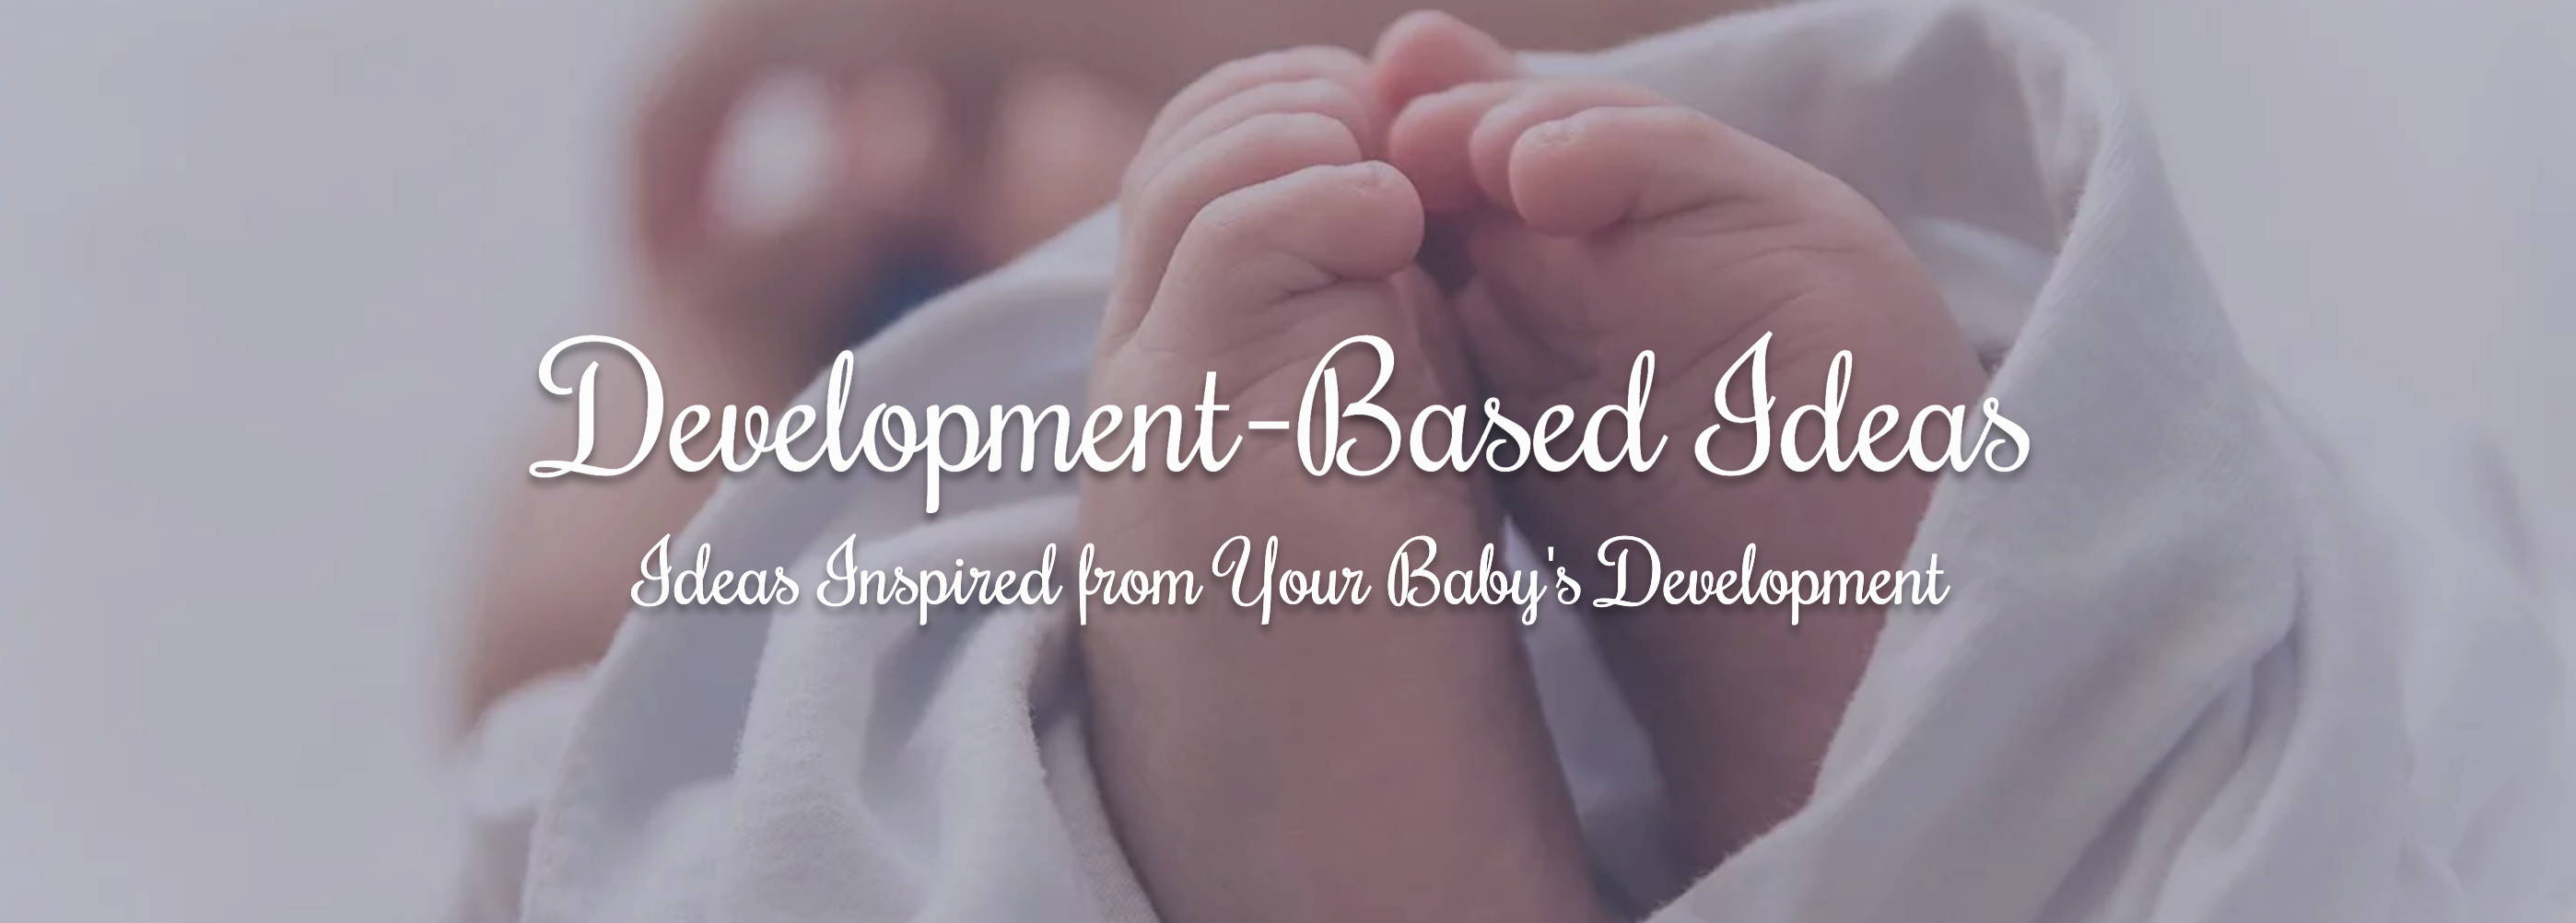 Babdy Development Ideas